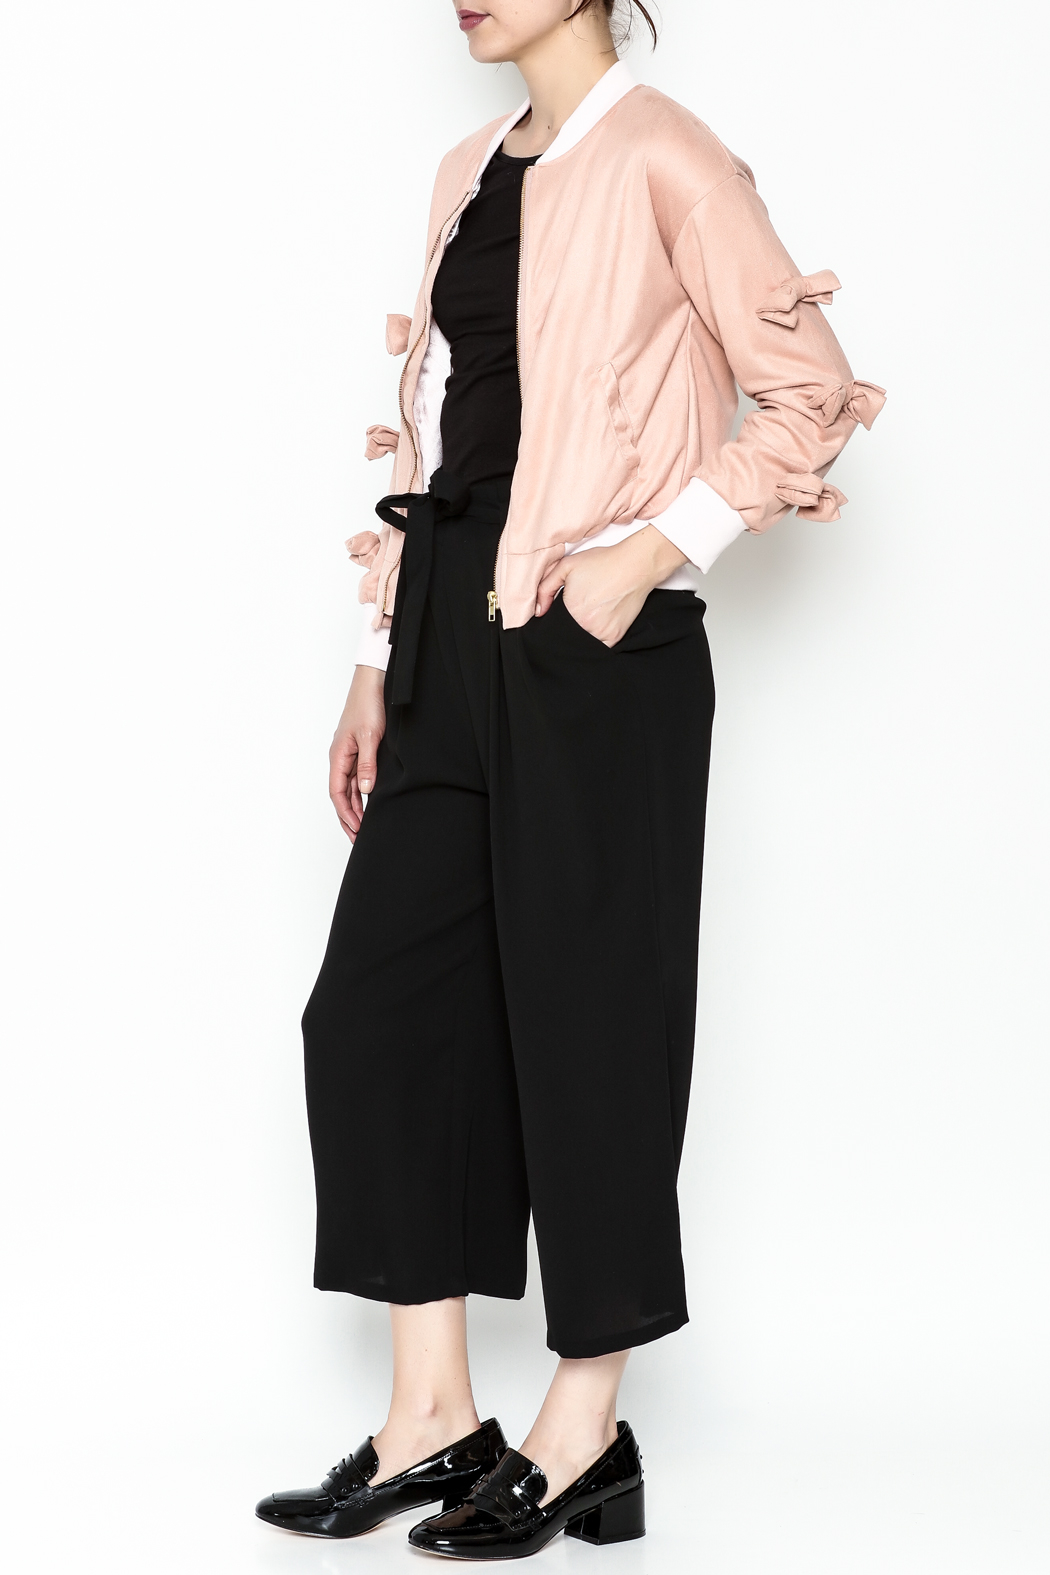 Fashion Pickle Pink Bow Jacket - Side Cropped Image